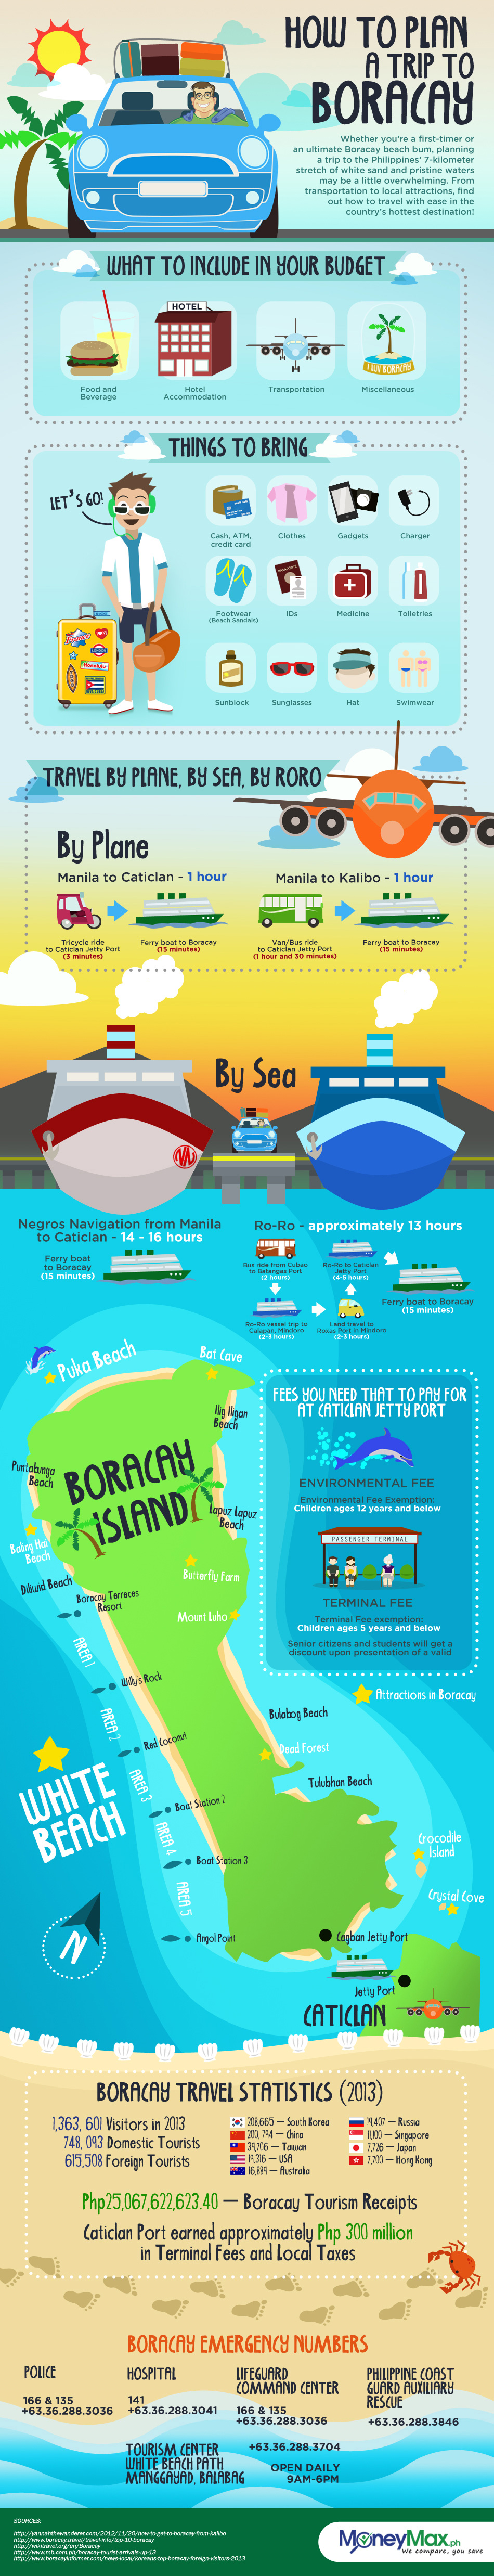 Infographic - Boracay Tips and Guides